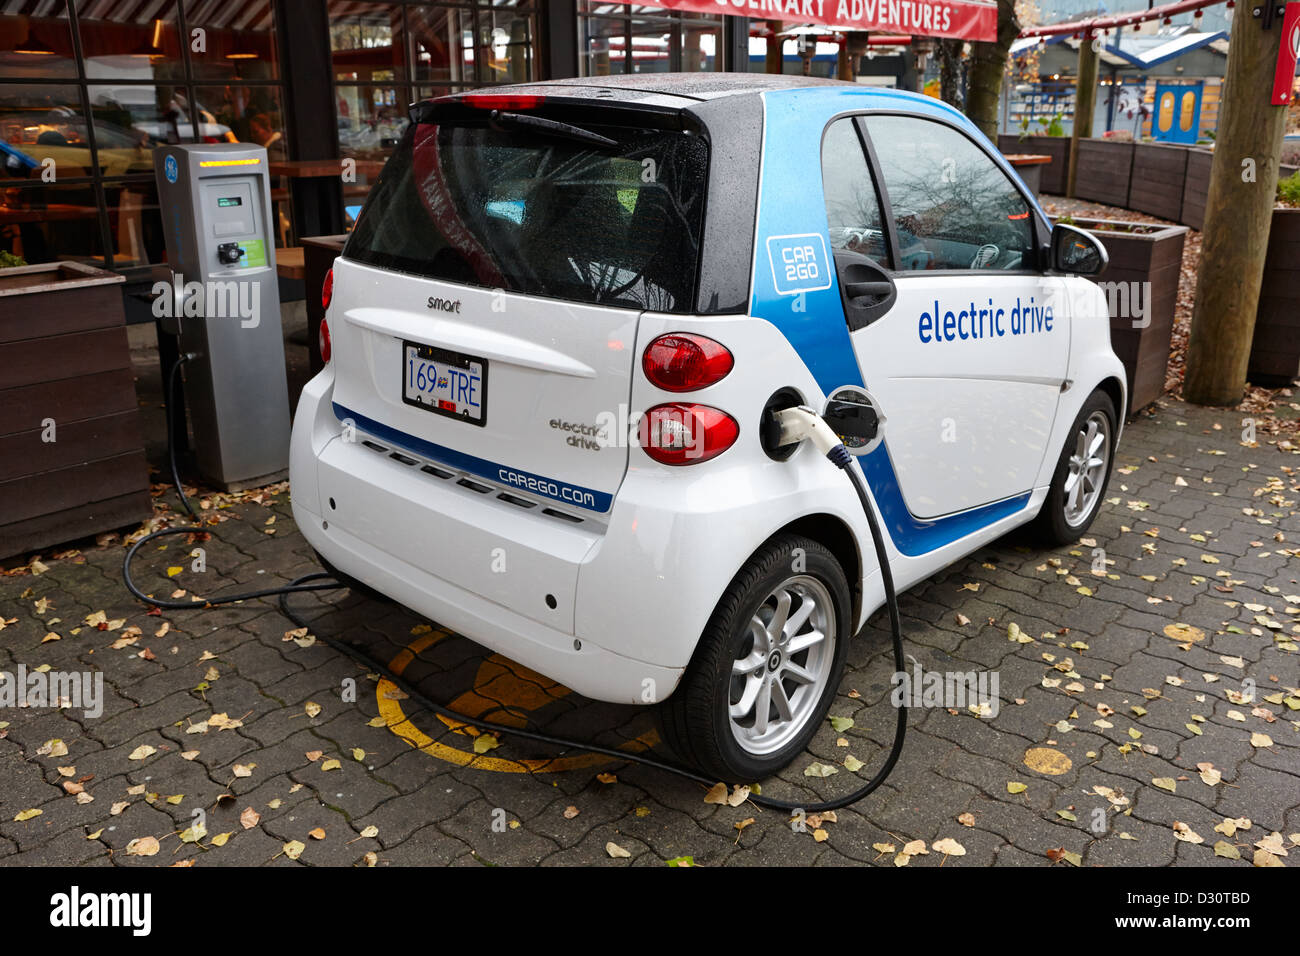 car sharing car2go electric car charging at a parking spot in Vancouver BC Canada - Stock Image